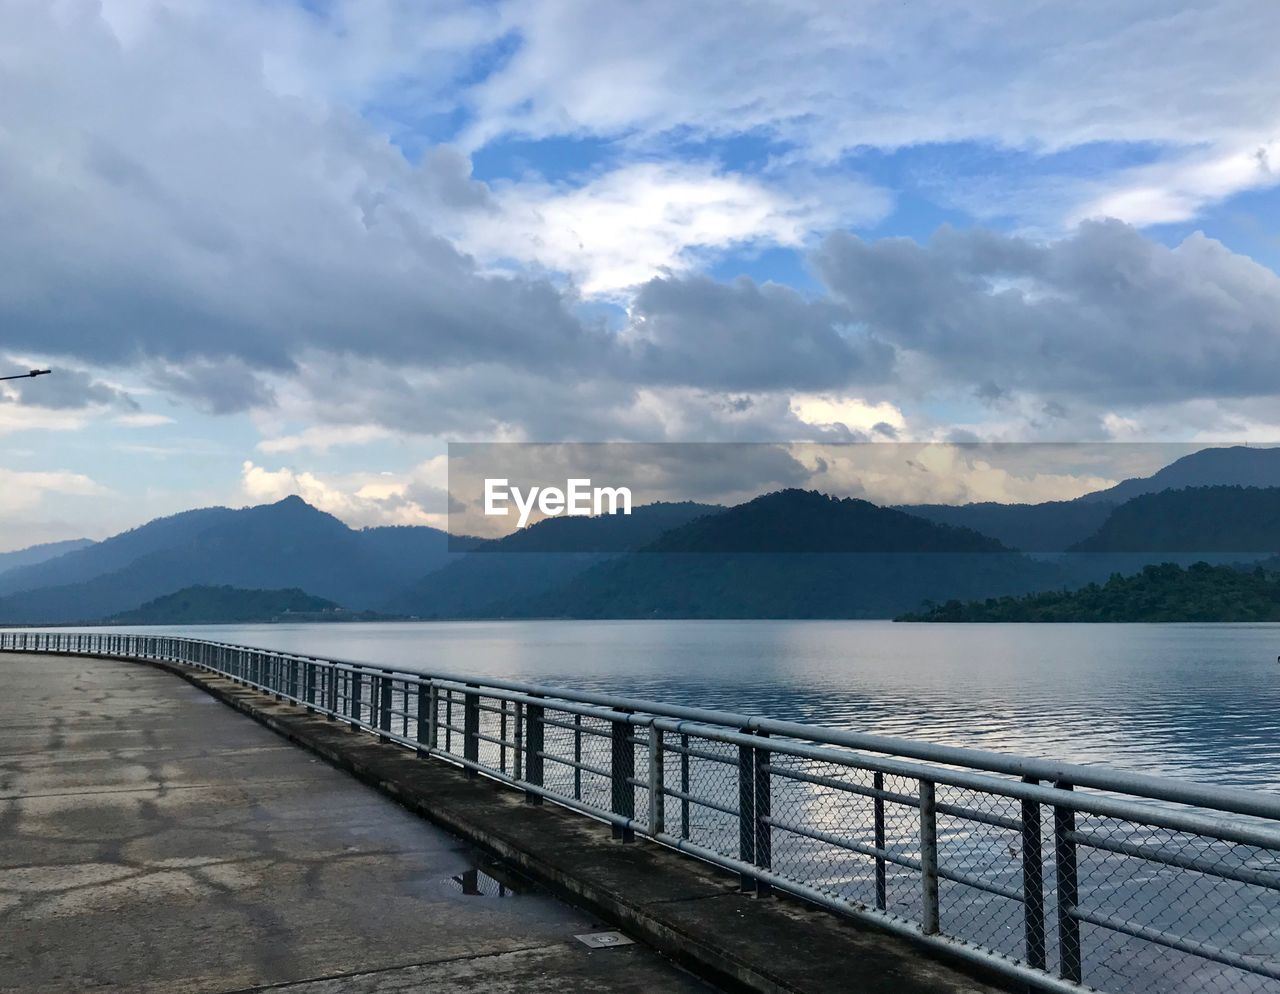 mountain, water, cloud - sky, sky, scenics - nature, beauty in nature, mountain range, tranquil scene, tranquility, railing, nature, lake, non-urban scene, no people, day, idyllic, outdoors, architecture, built structure